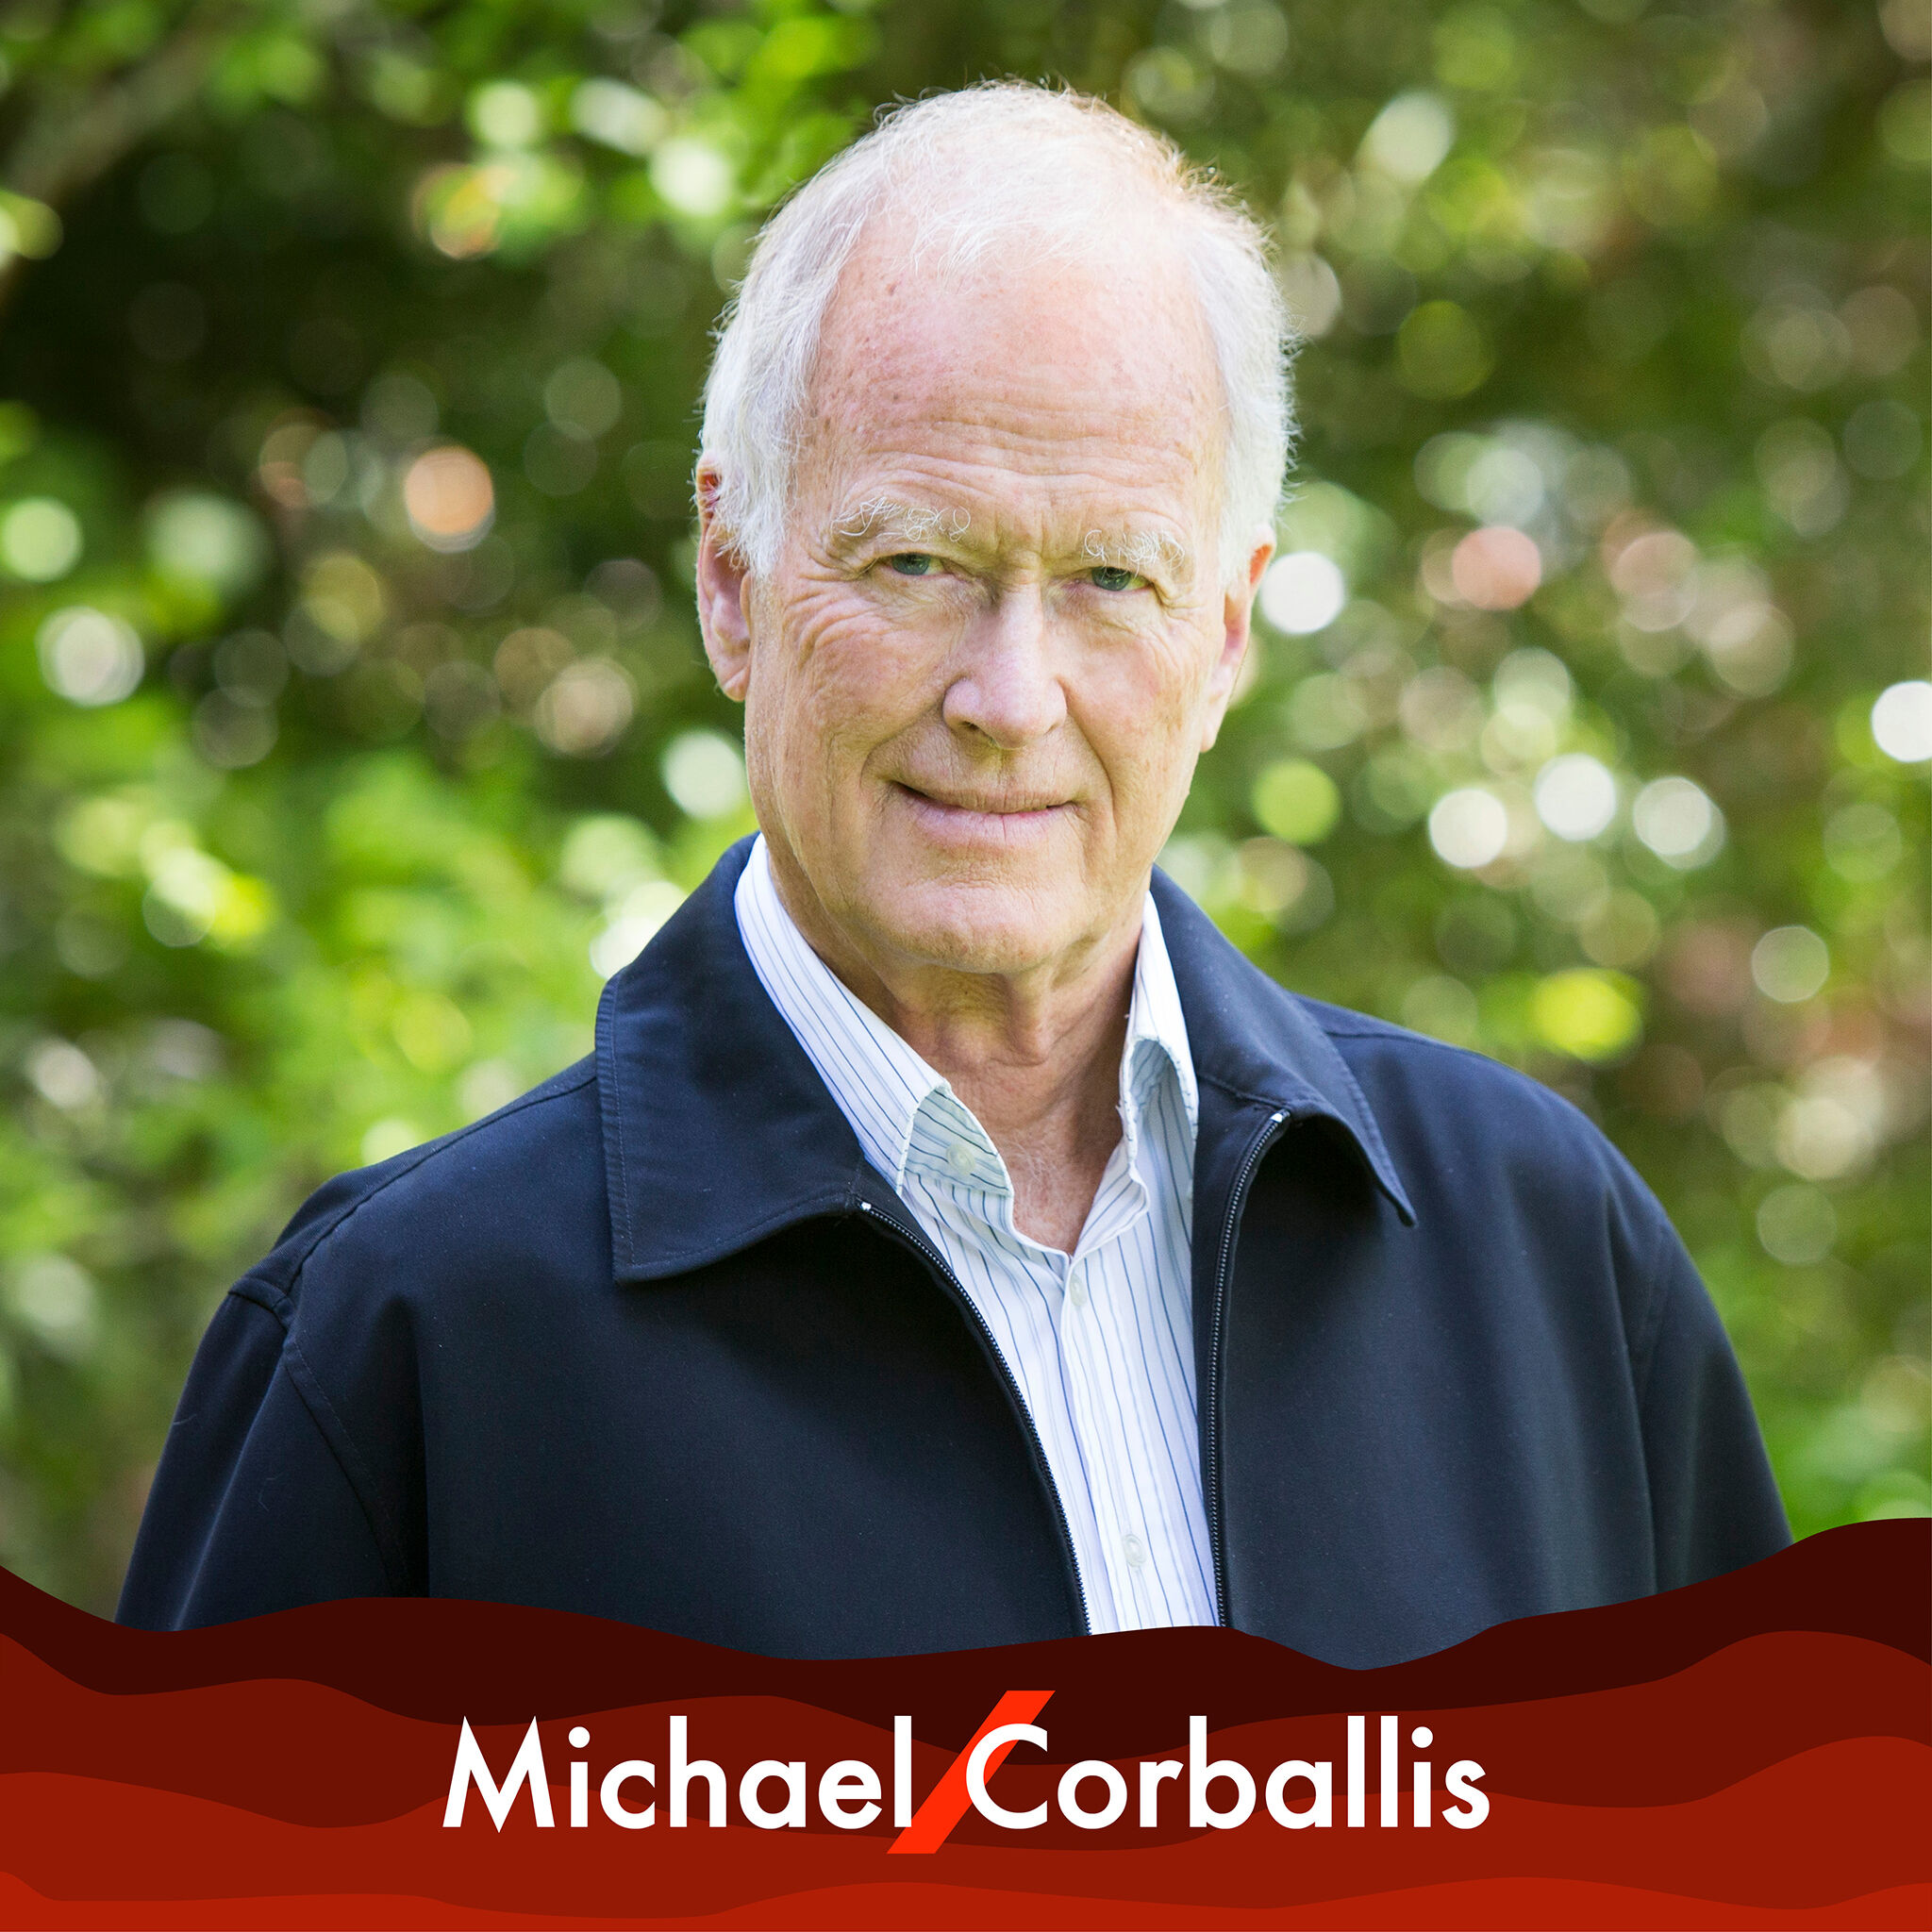 A picture of Michael Corballis